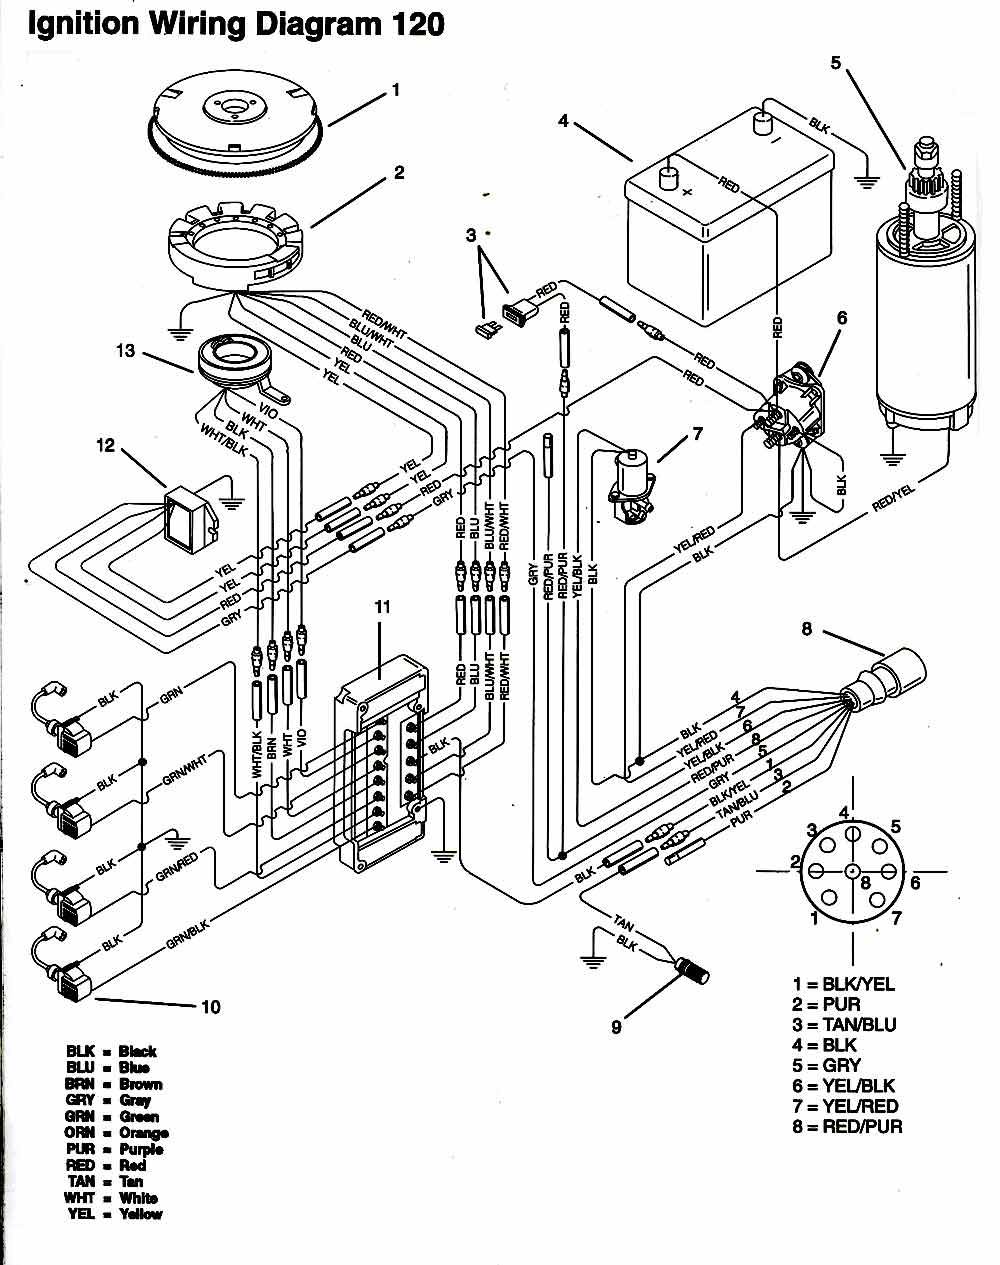 mercury 60 hp wiring diagram wiring diagrams Mercury 200 HP Wiring Diagram chrysler 55 hp outboard motor wiring diagrams download wiring diagramchrysler outboard wiring diagrams mastertech marineforce 120